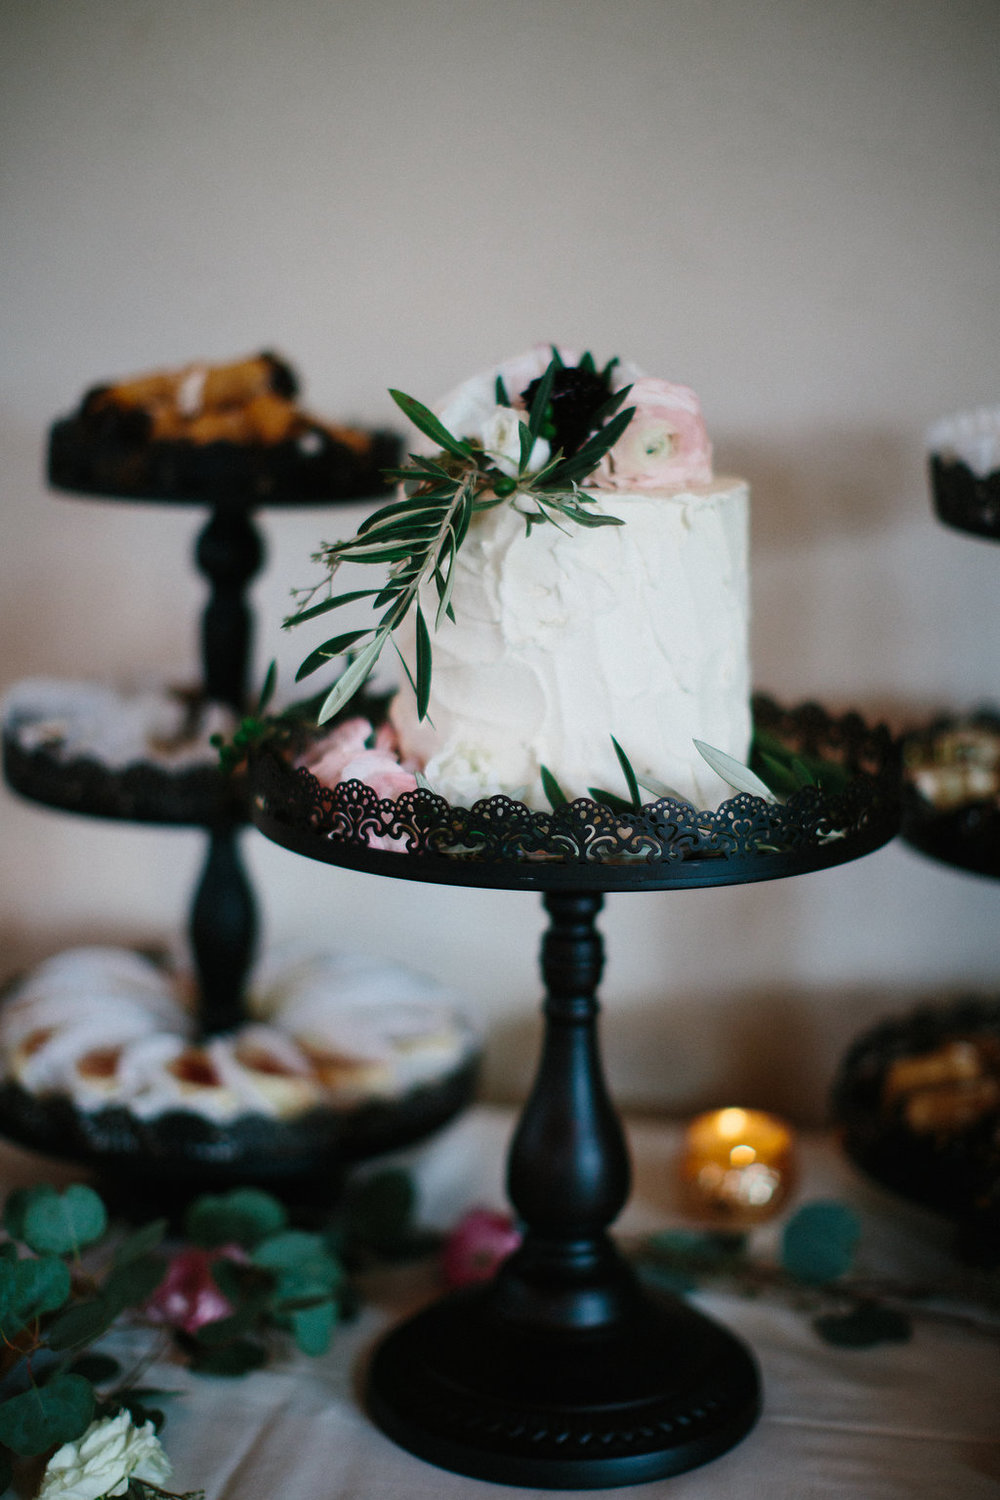 Amy's cupcake shoppe cake | Artemesia cake flowers | Kristina Lorraine Photography | Sixpence Events and Planning | wedding podcast | Villa Bellezza wedding venue in Wisconsin